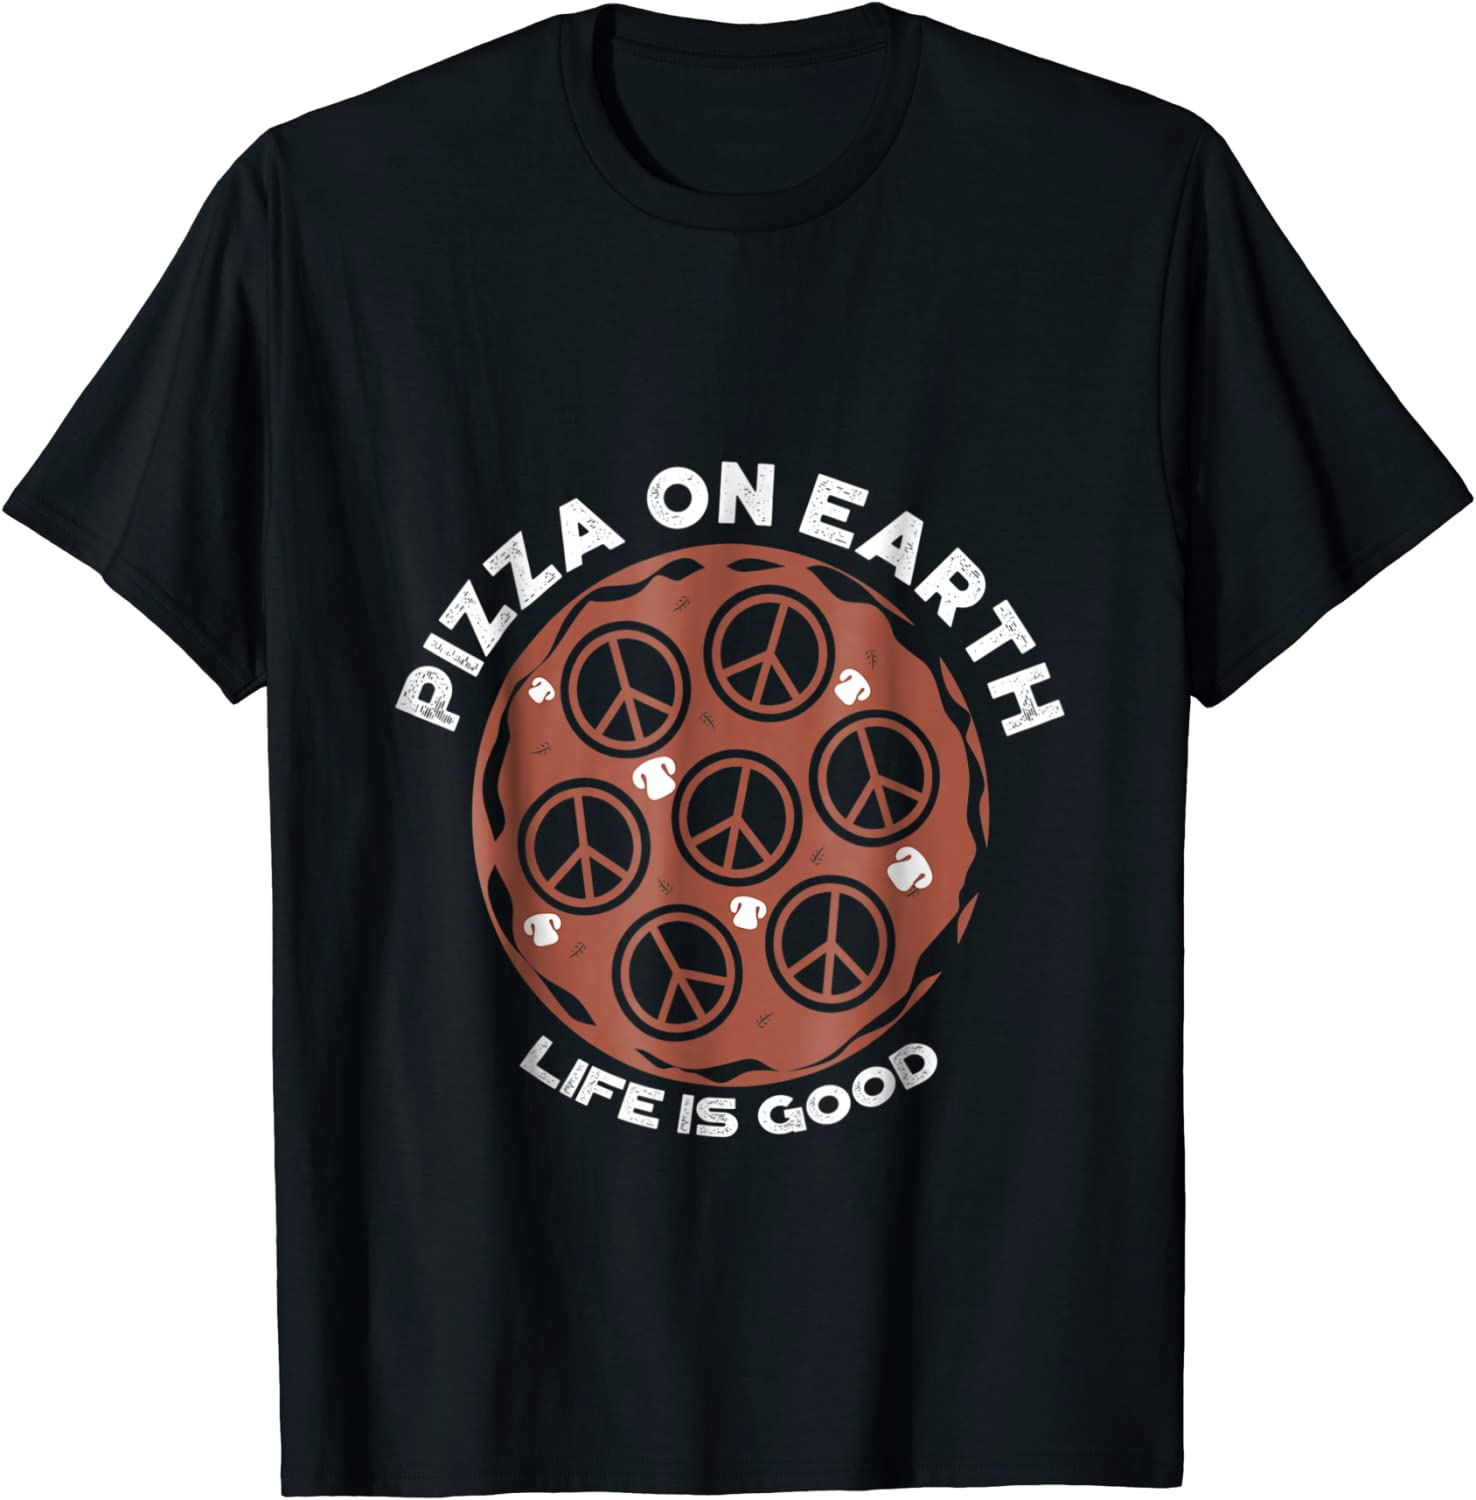 Pizza On Earth, Life Is Good T-Shirt Food Lover Peace Gift